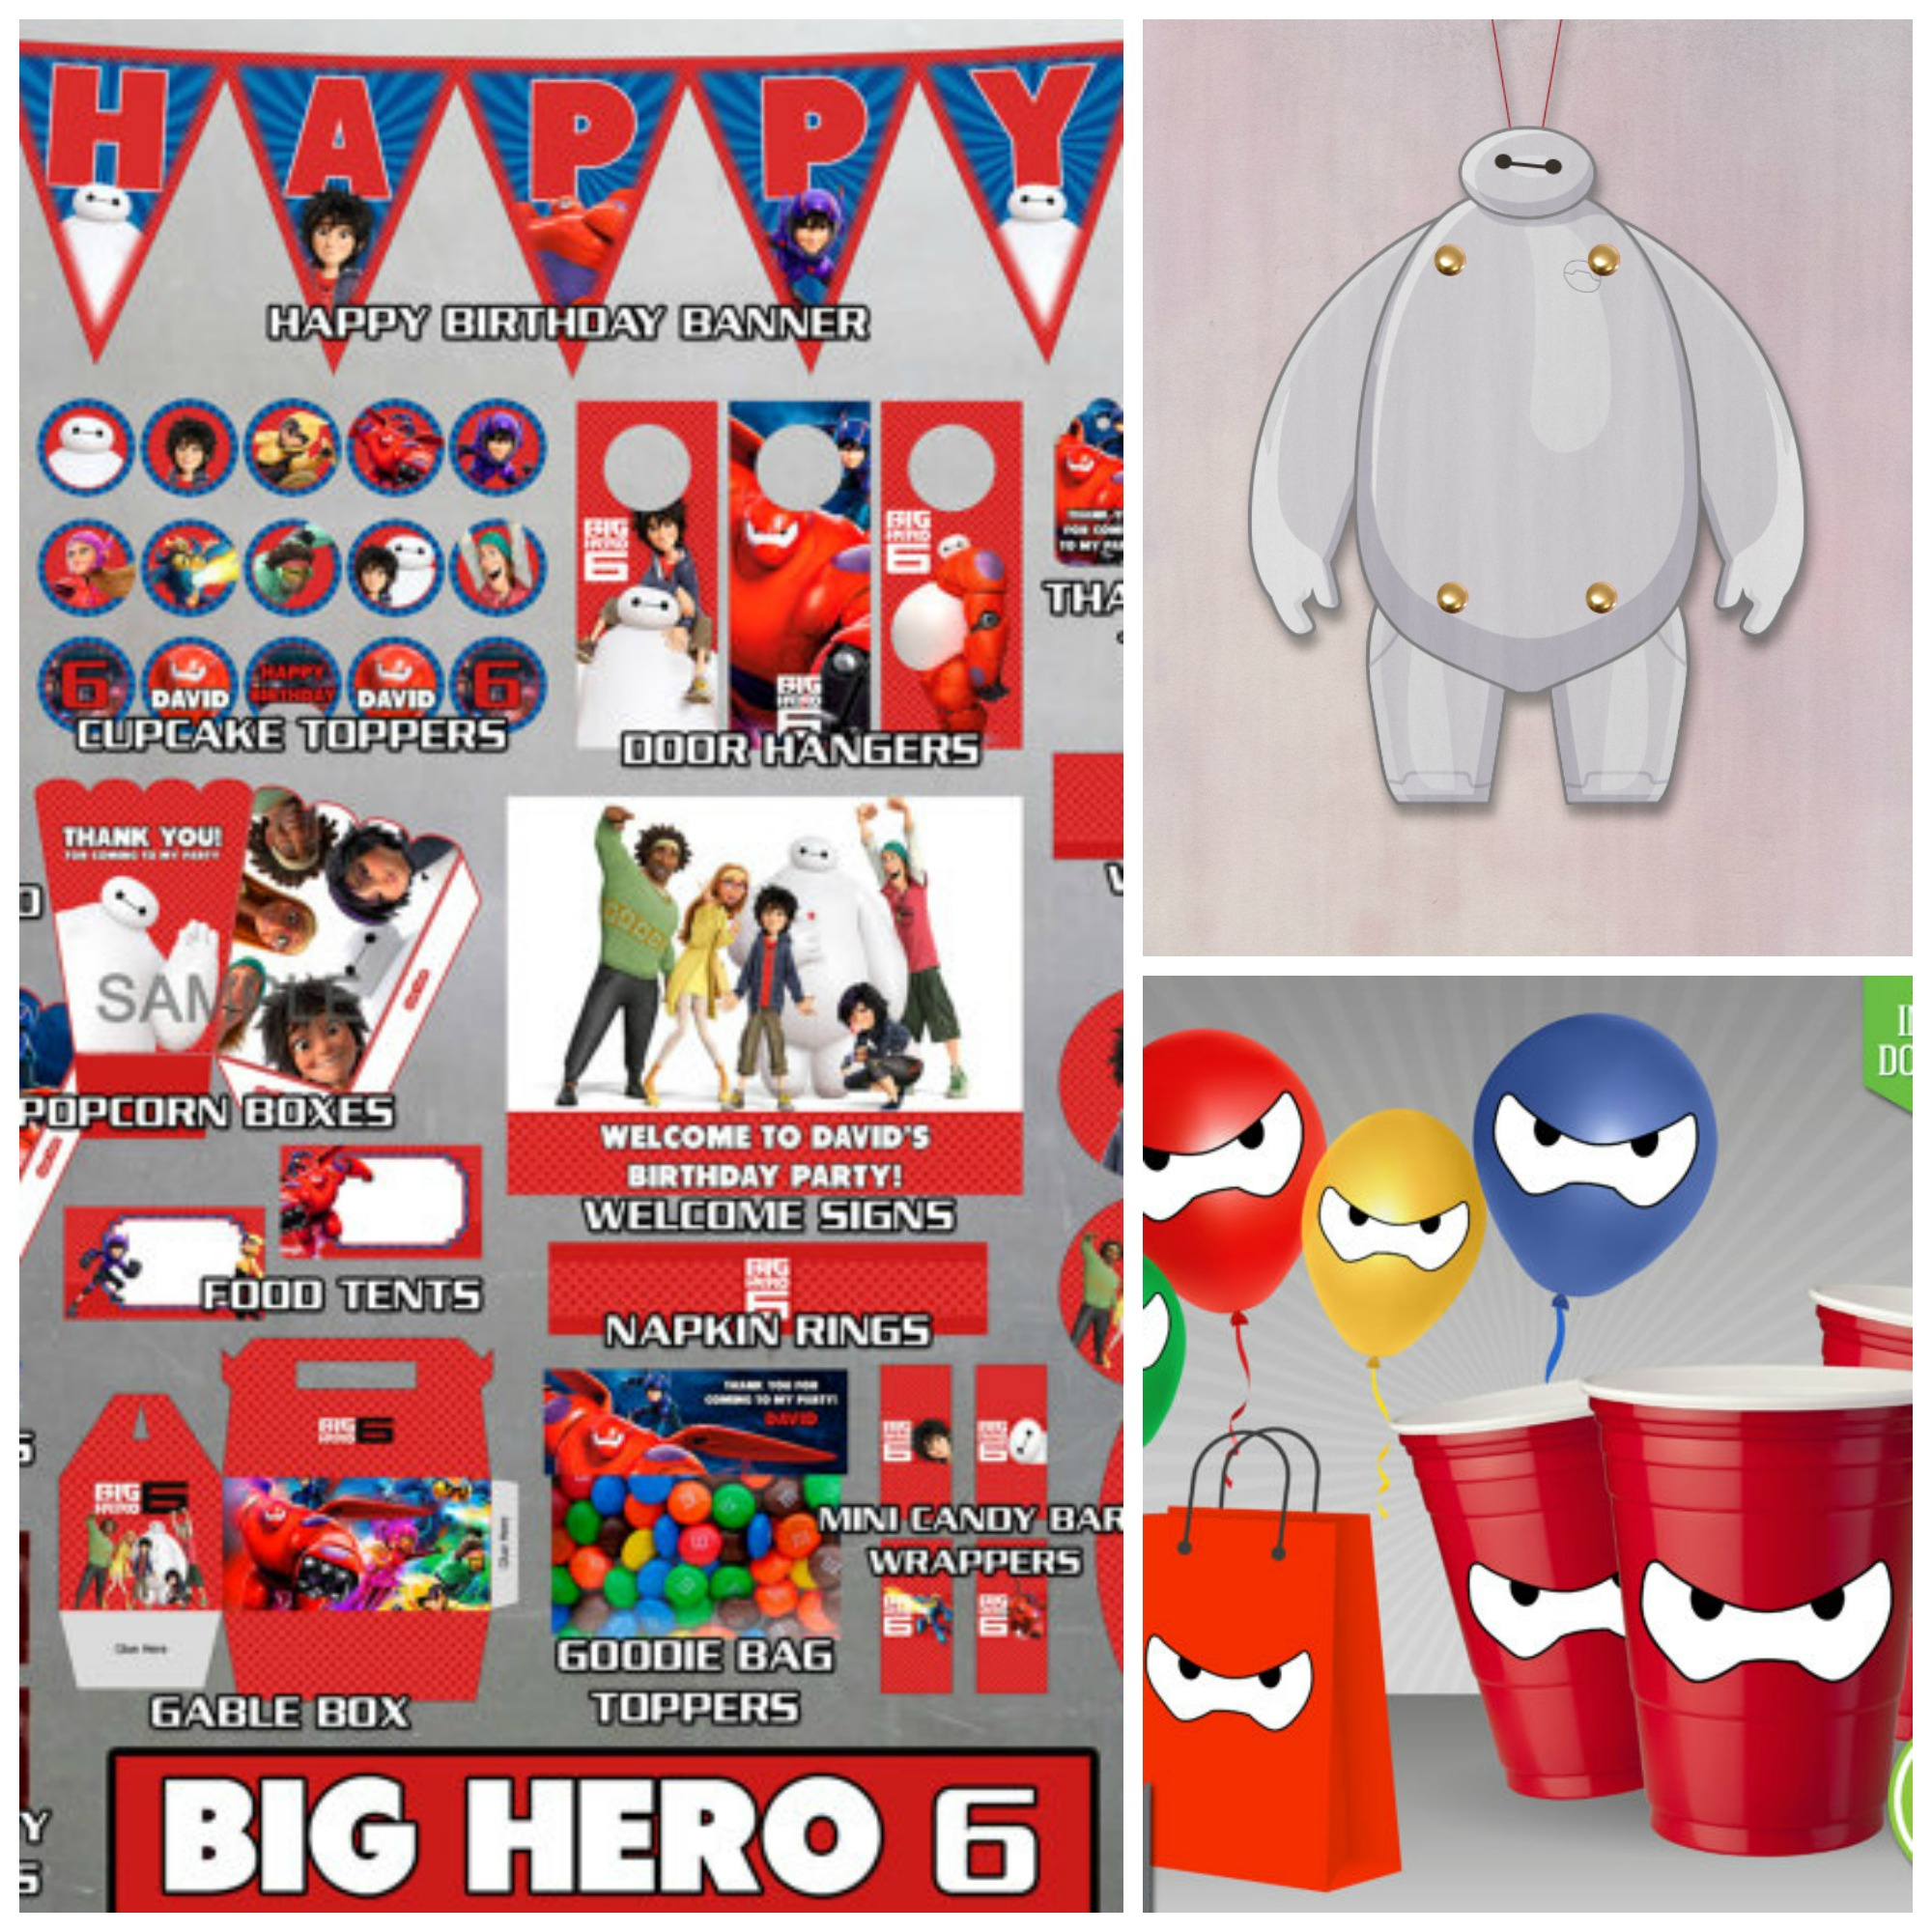 25 big hero 6 birthday party ideas burnt apple